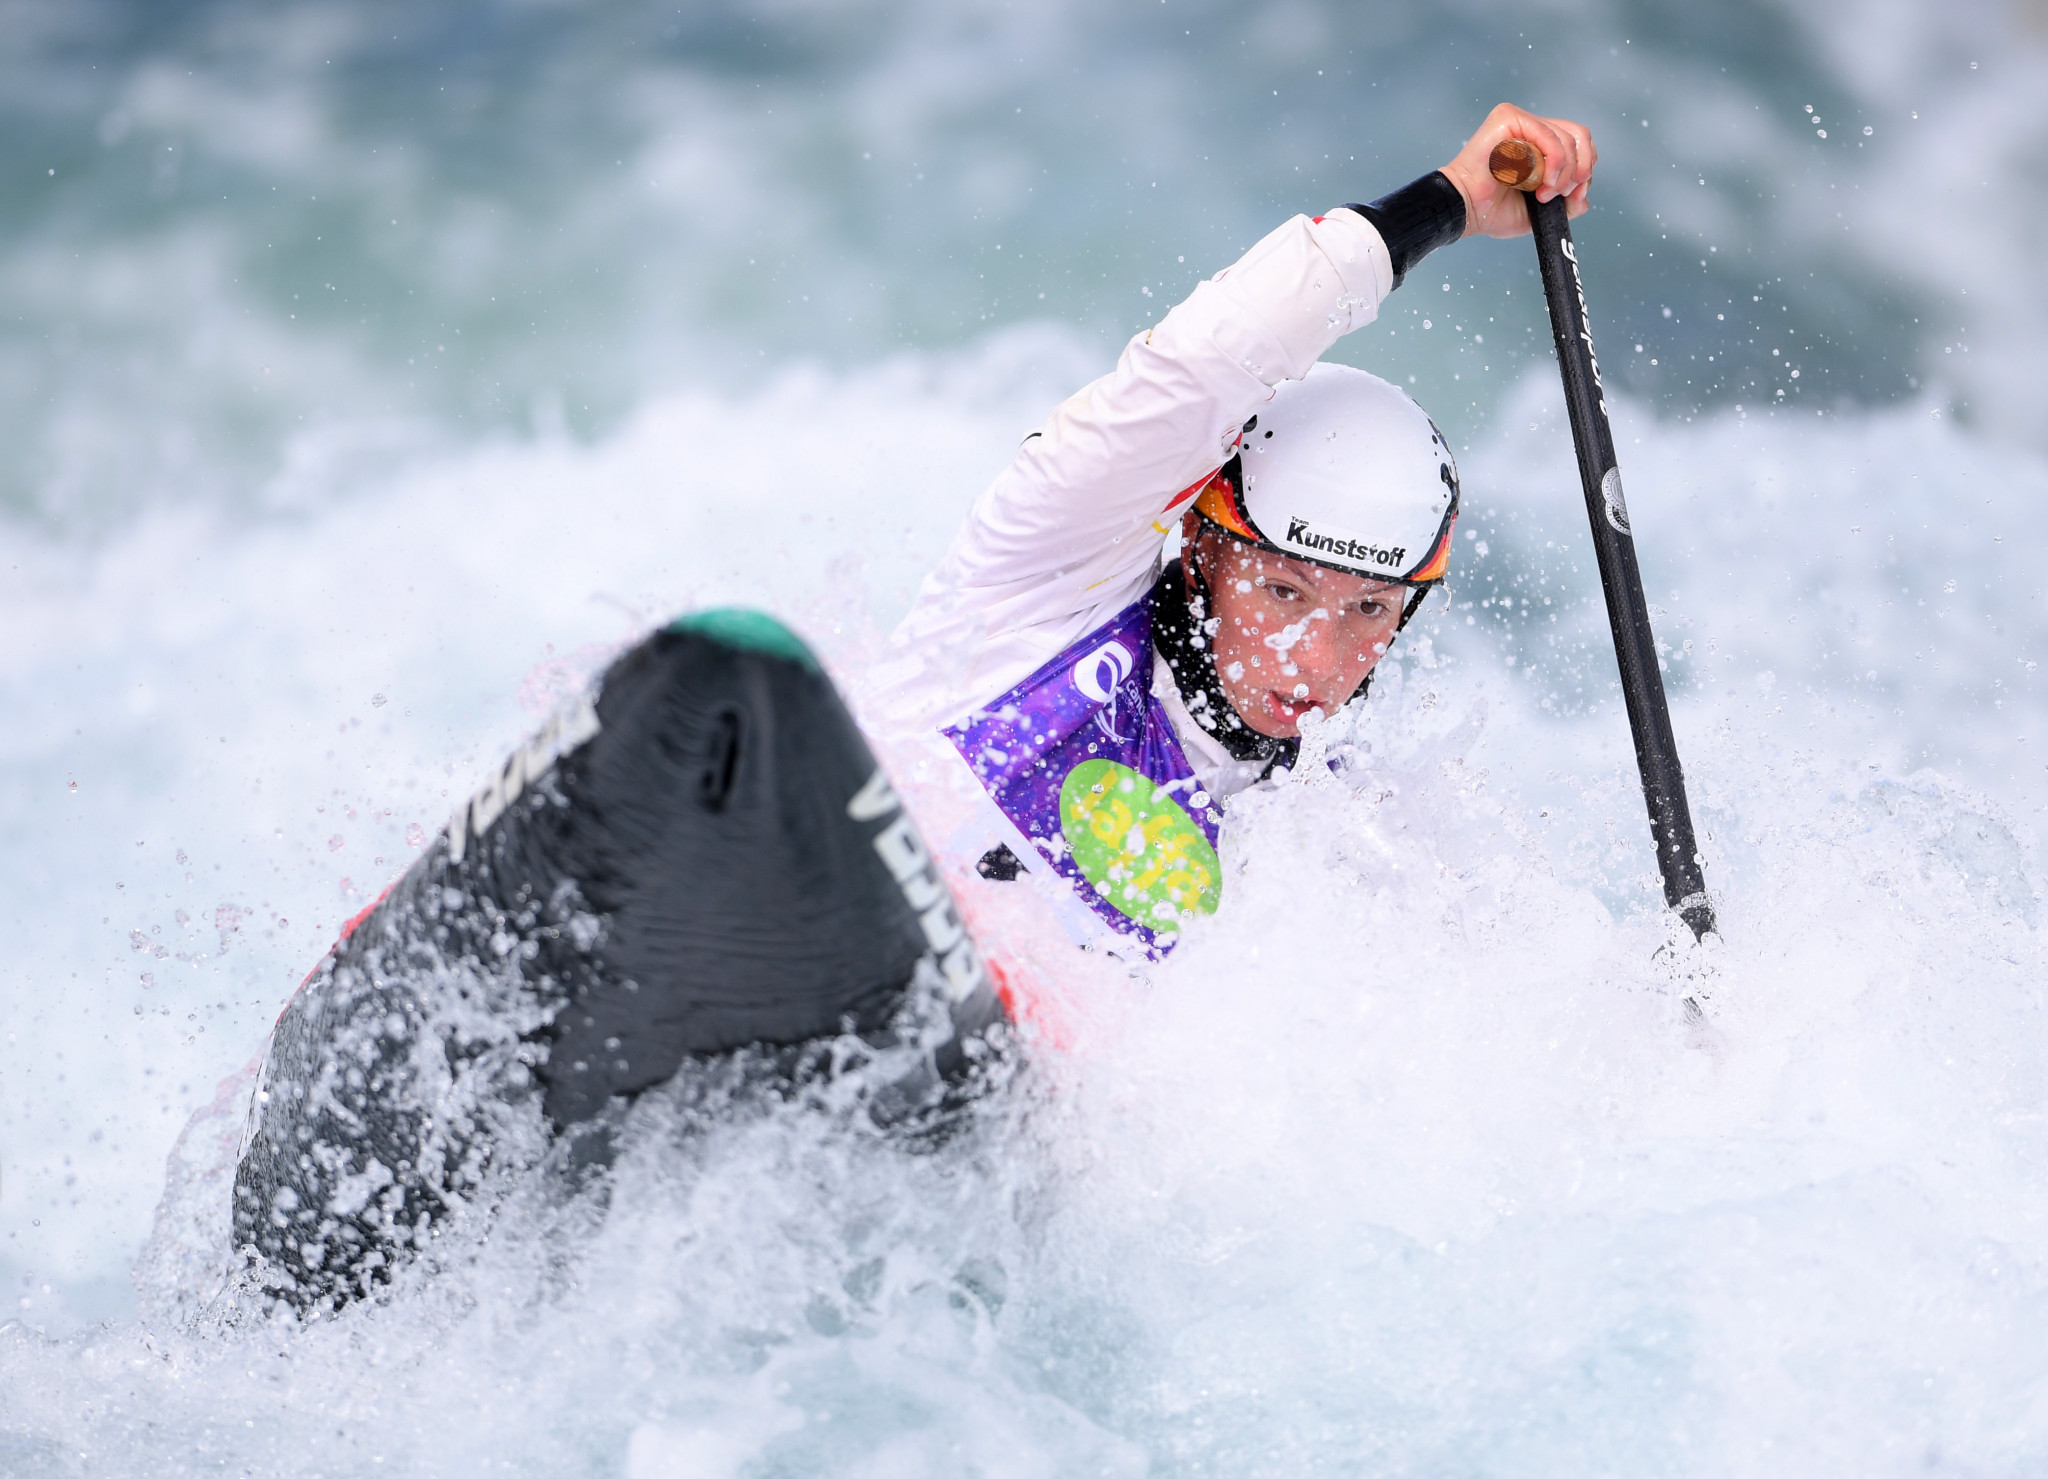 Germany's Andrea Herzog triumphed in the women's C1 final ©Getty Images